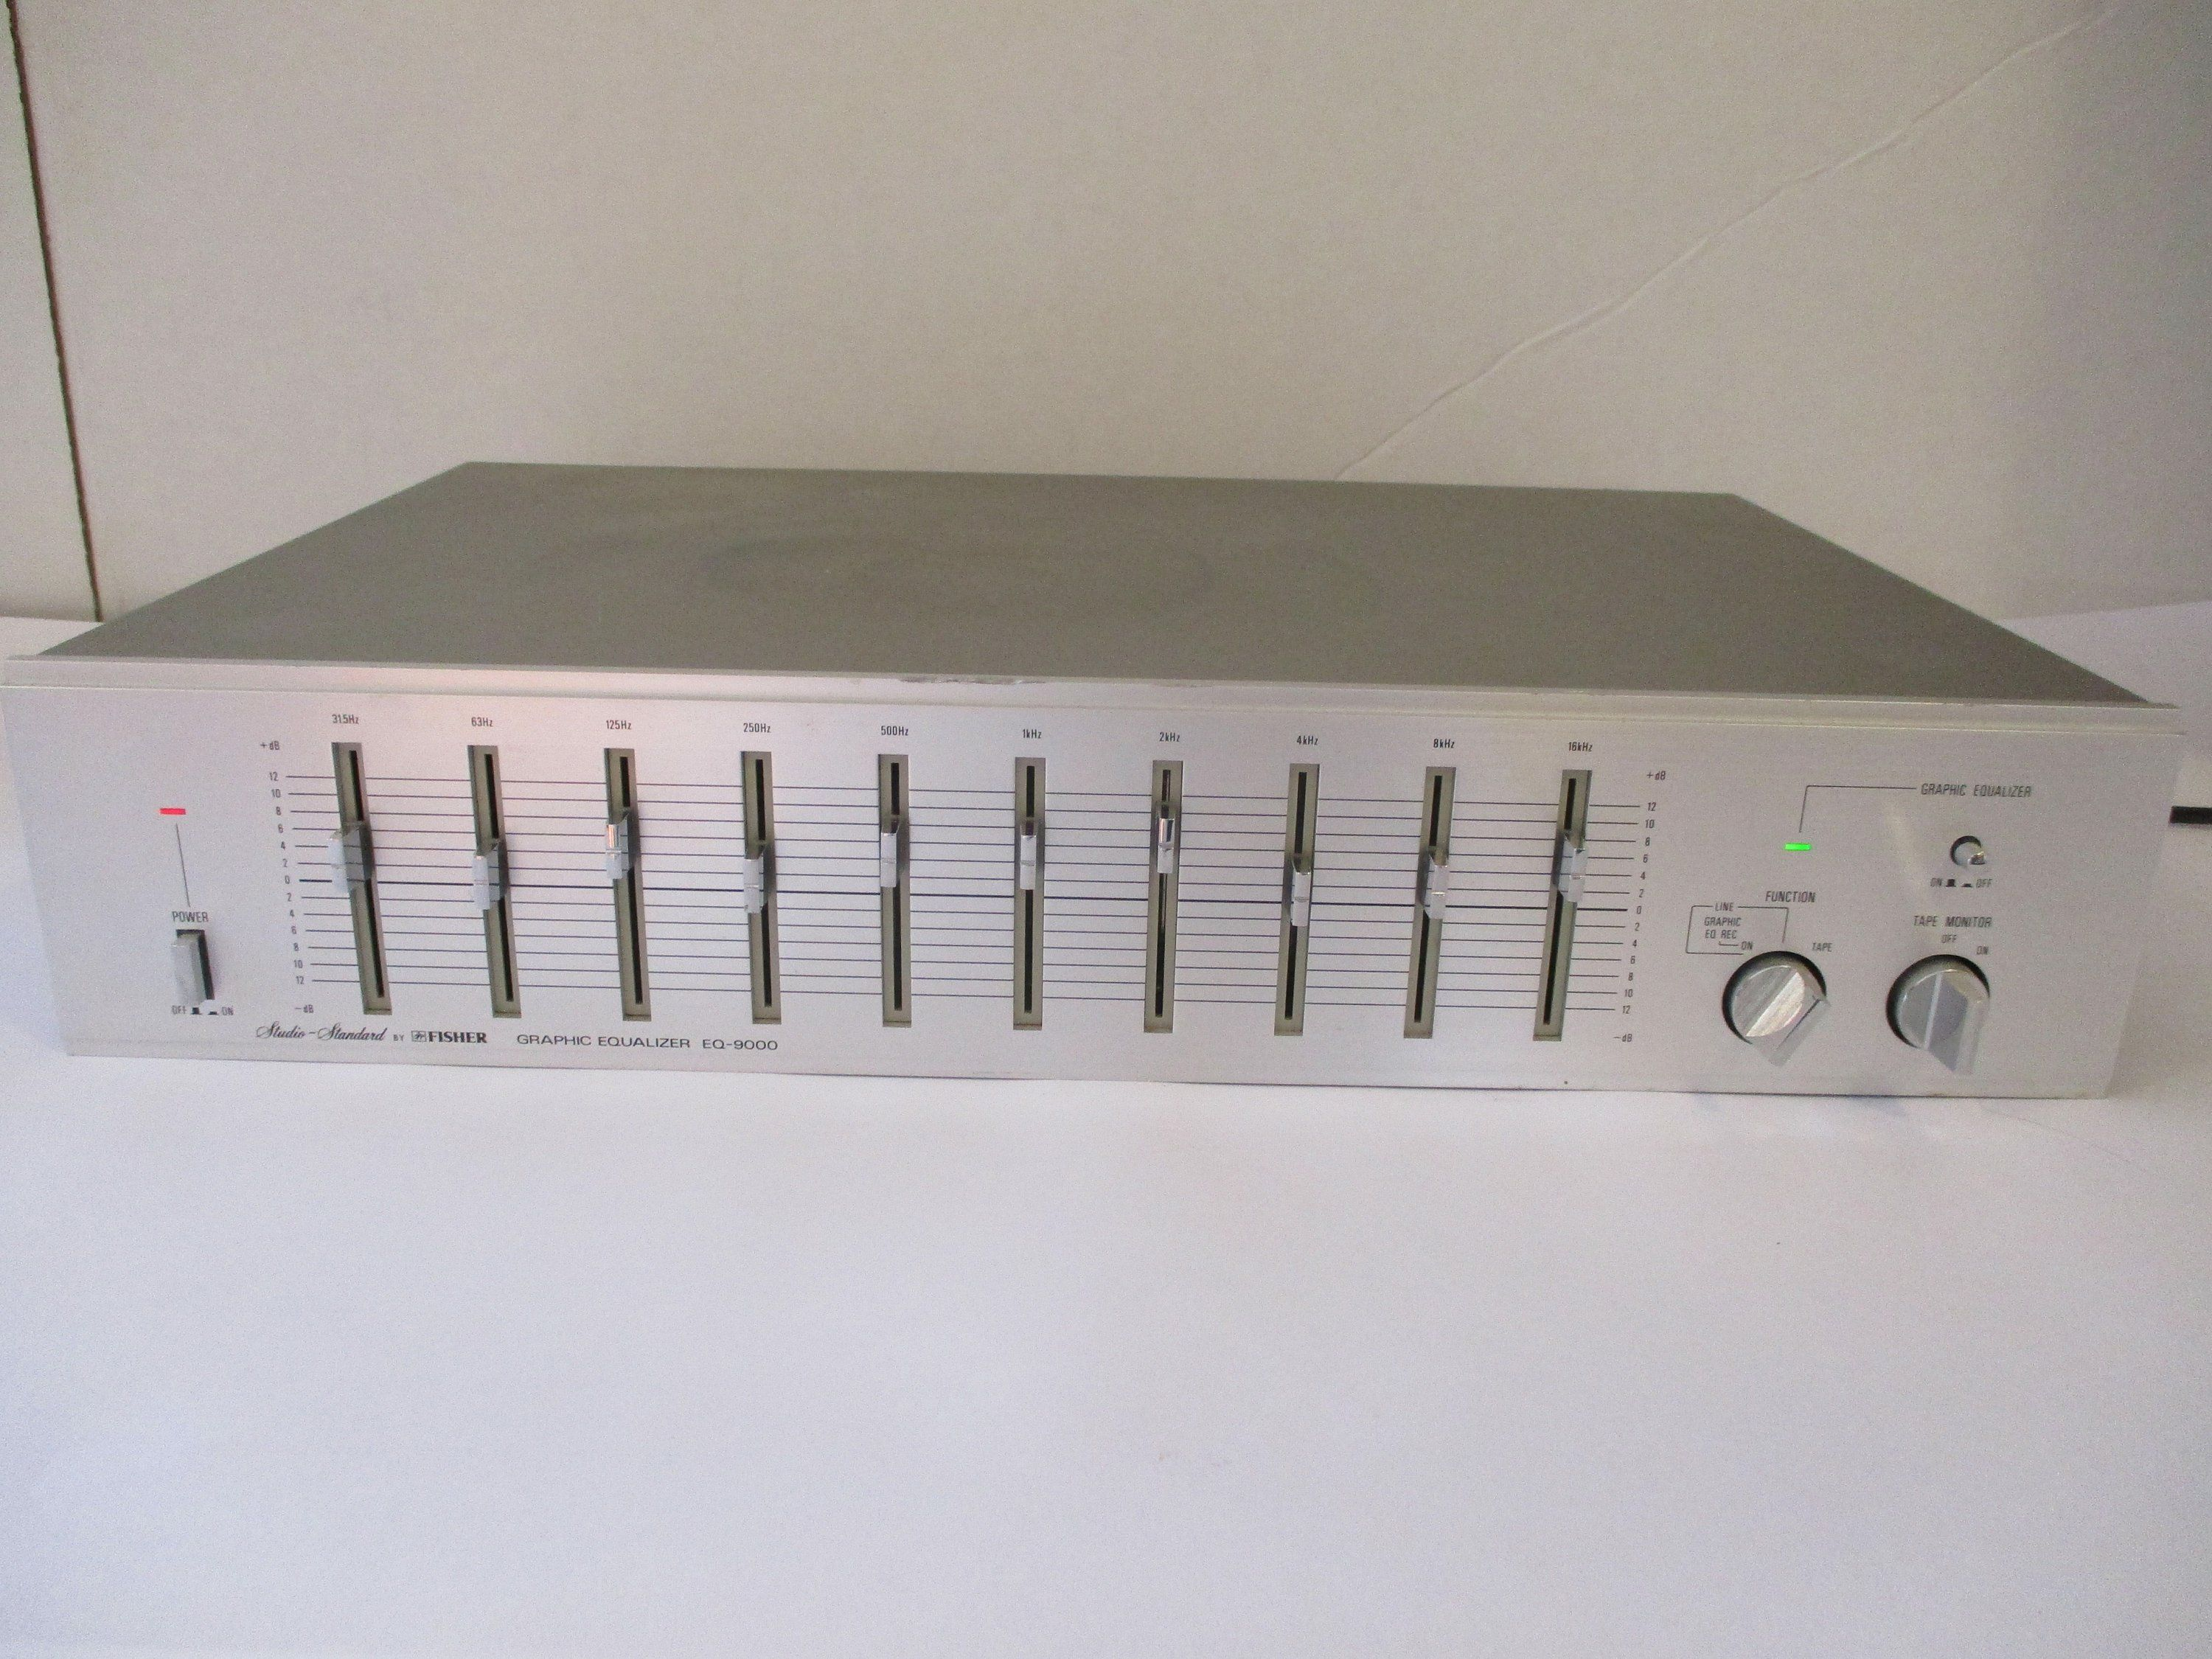 Fisher Eq 9000 Graphic Equalizer Silver Face Stereo Component By Theposterposter On Etsy Black And White Posters Equalizer Graphic